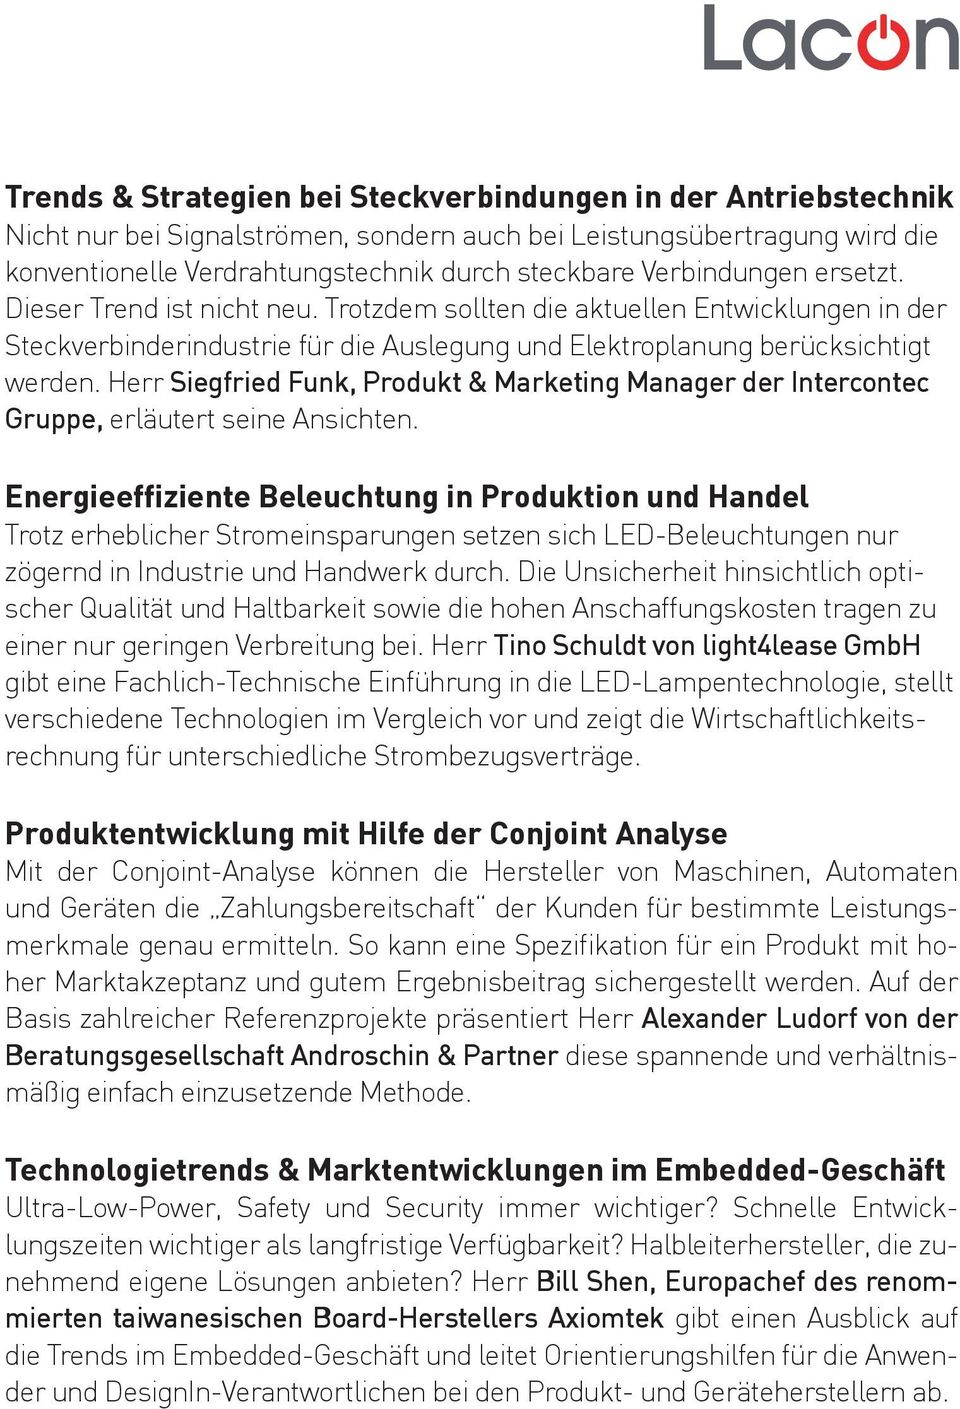 Herr Siegfried Funk, Produkt & Marketing Manager der Intercontec Gruppe, erläutert seine Ansichten.